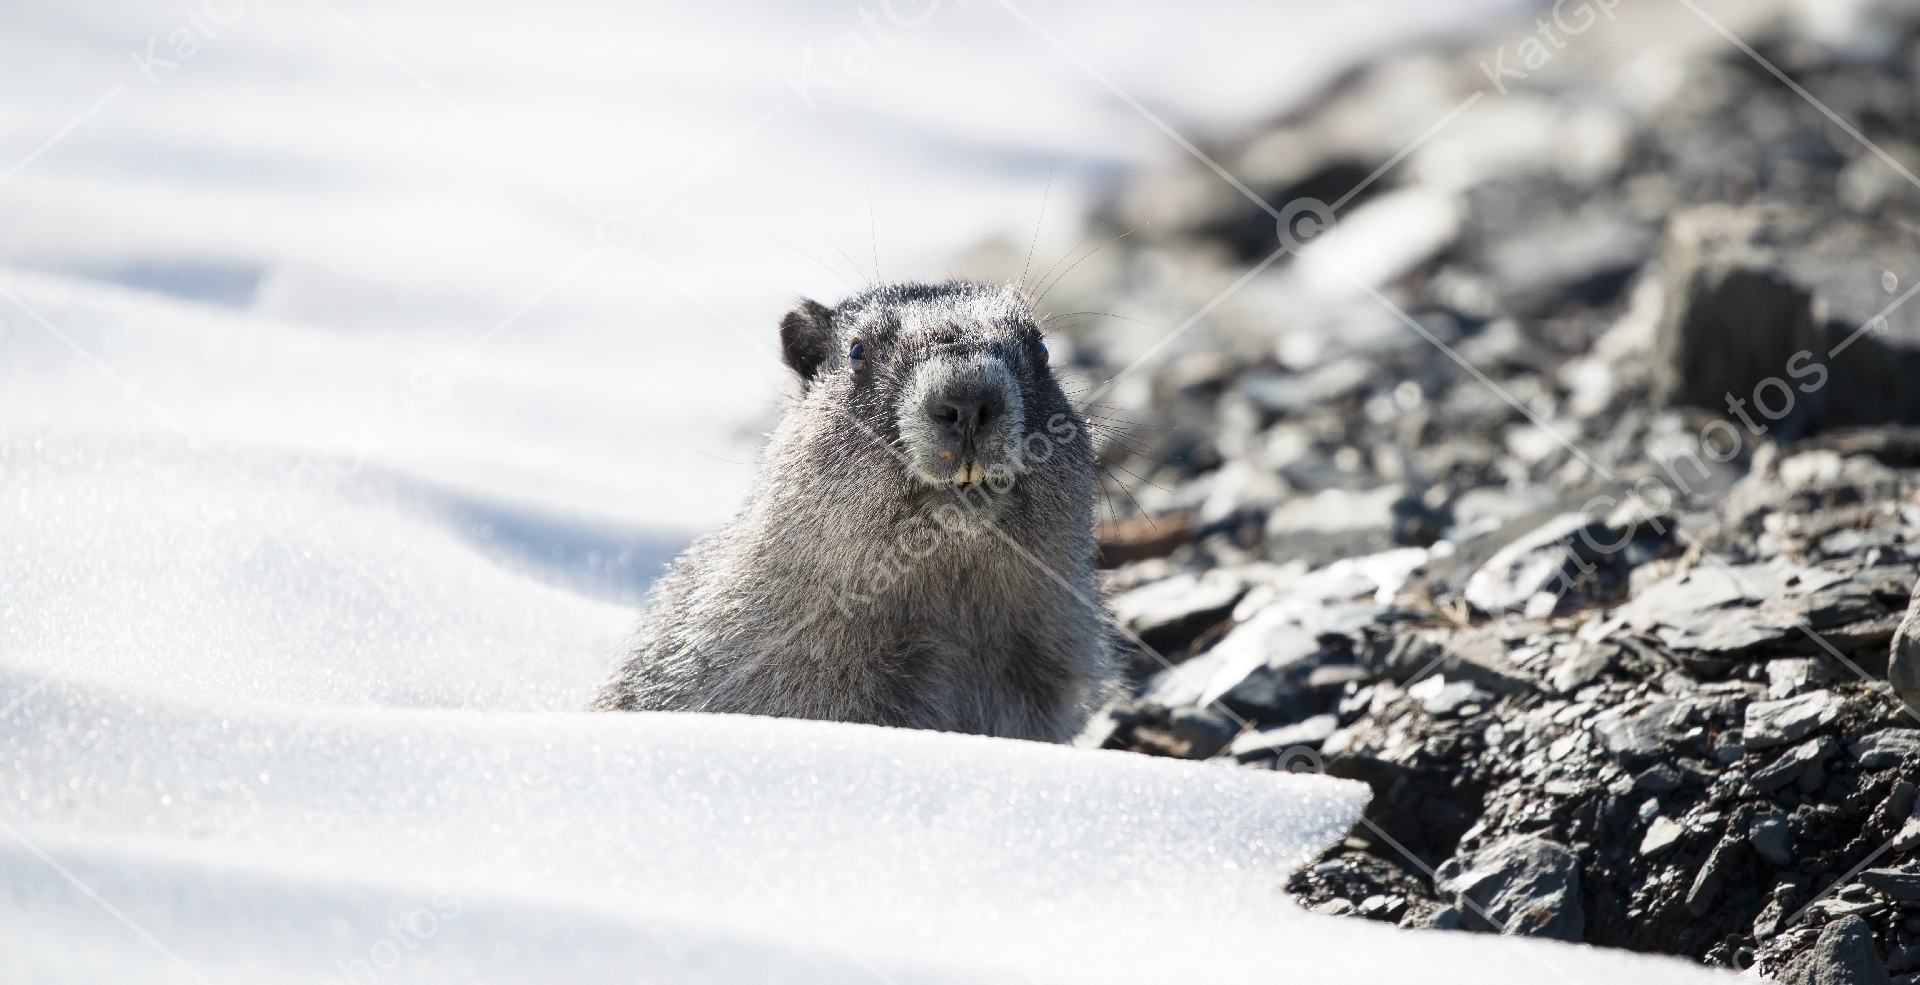 Alaska marmot, Brooks Range marmot, Brower's marmot, wildlife, Alaska, wild,  lindbladexp, natgeo, perfect, nature,  animal captures, beautiful, wildlife